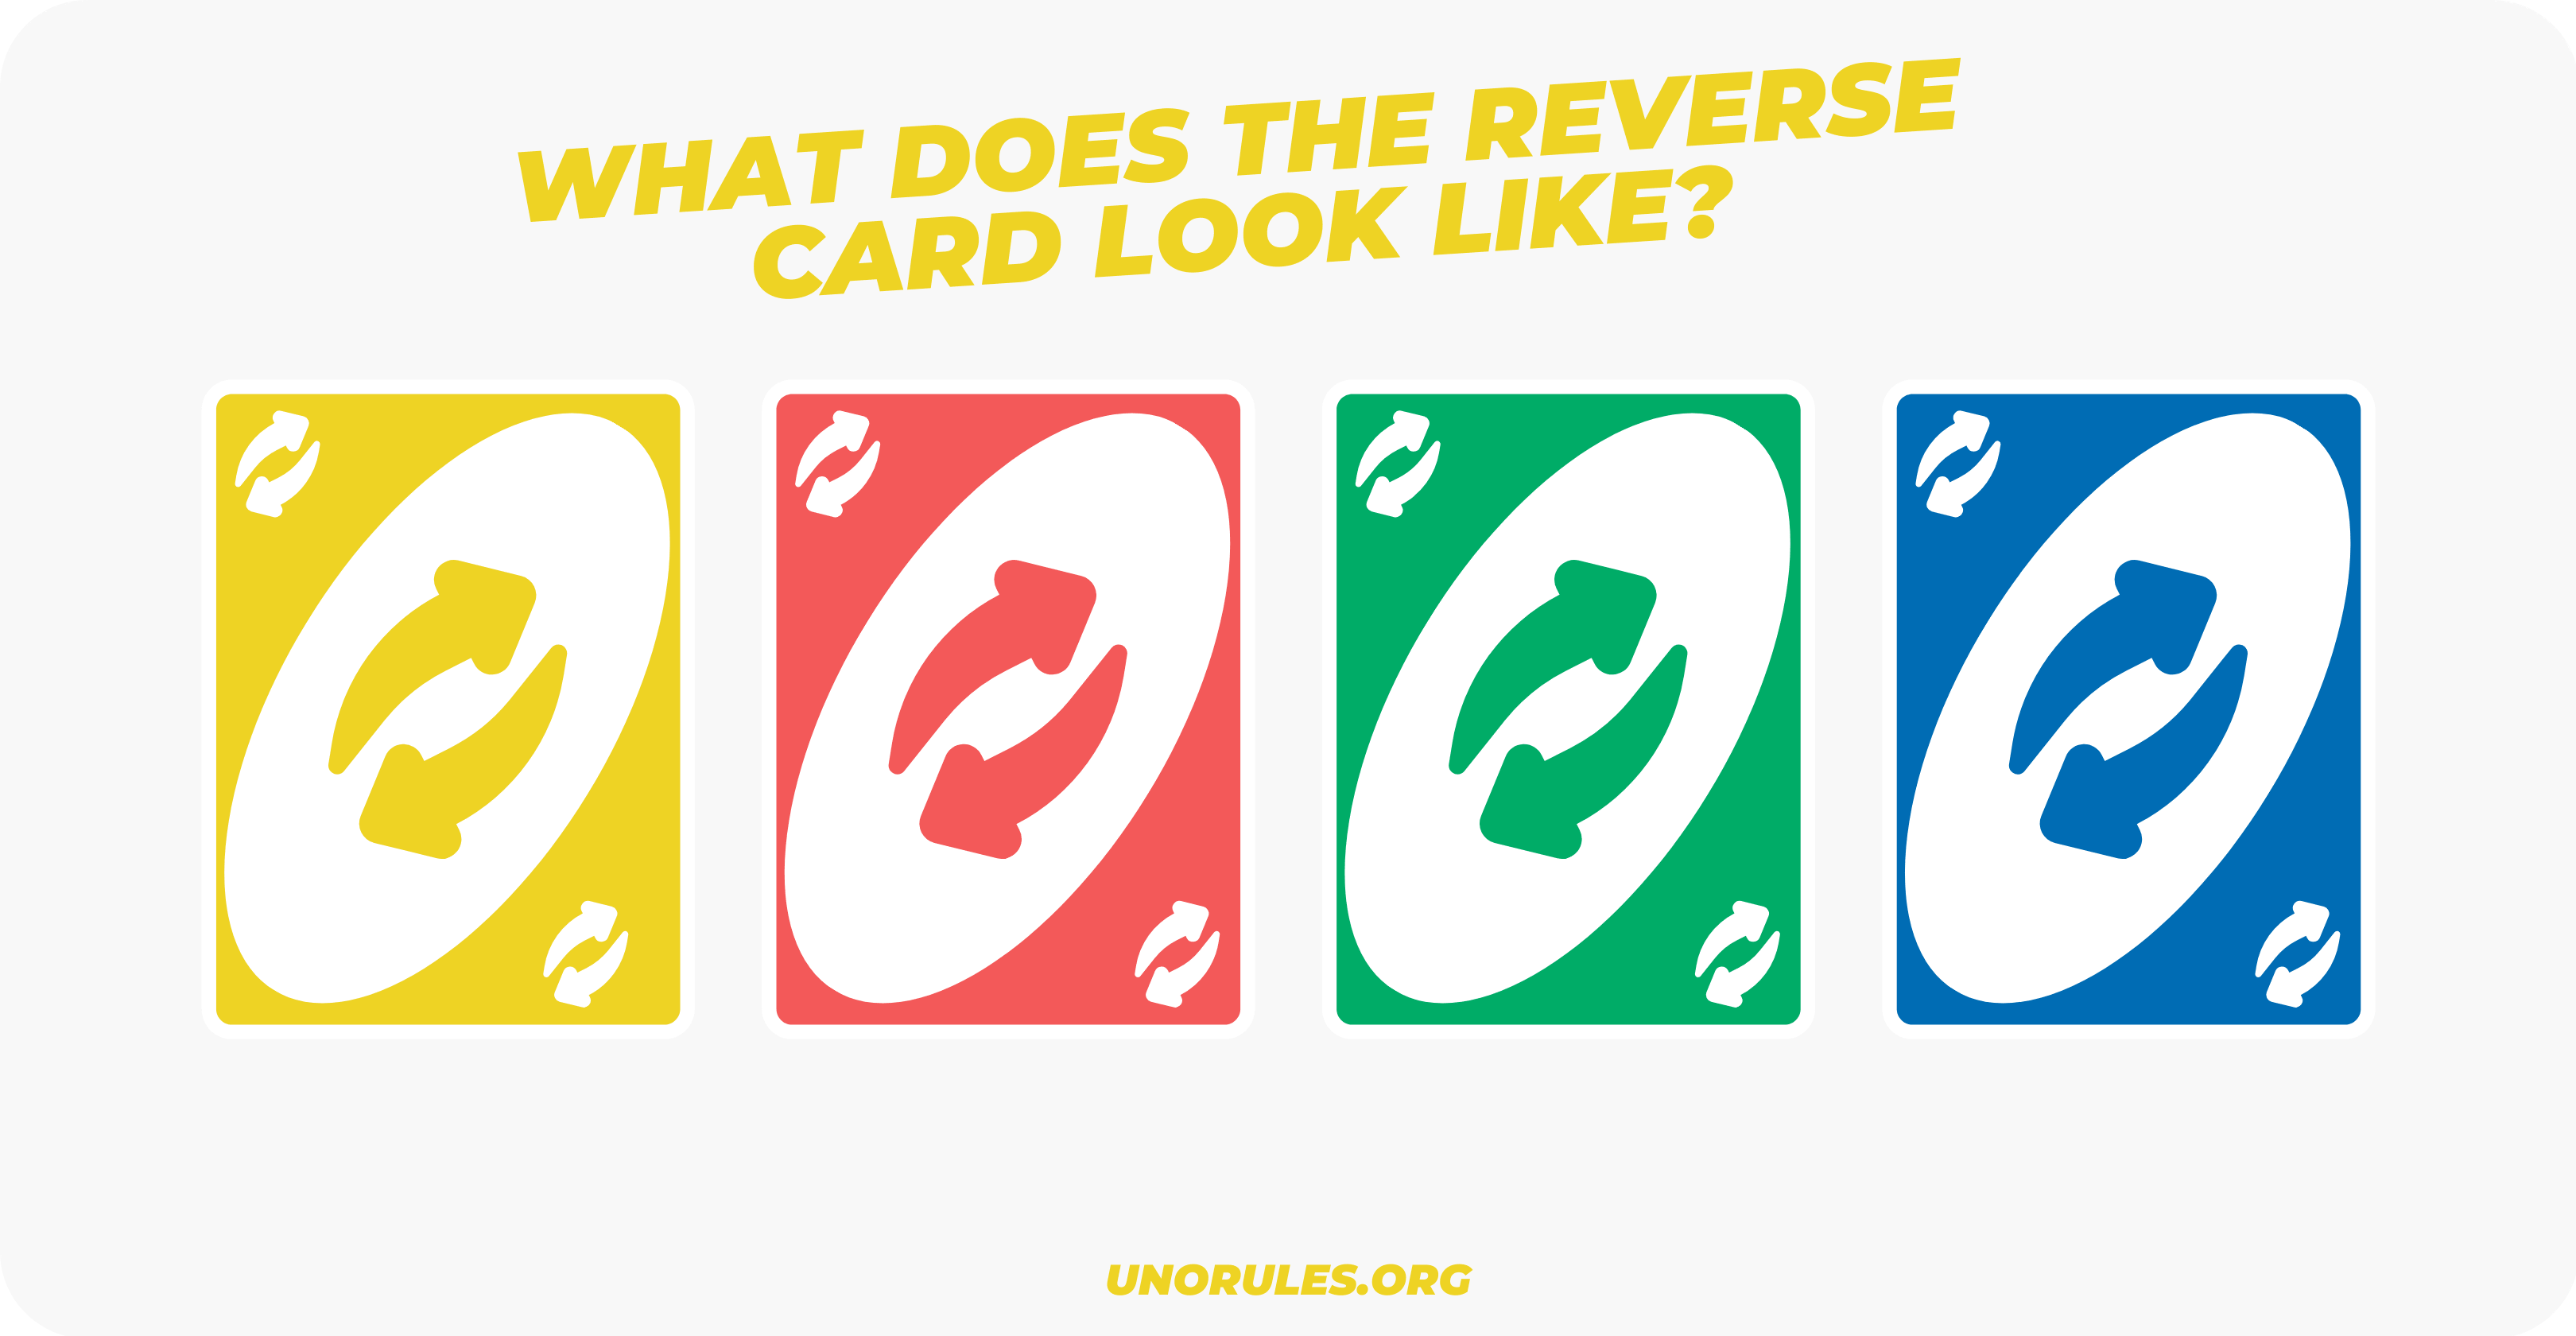 What does the reverse card look like - All colors